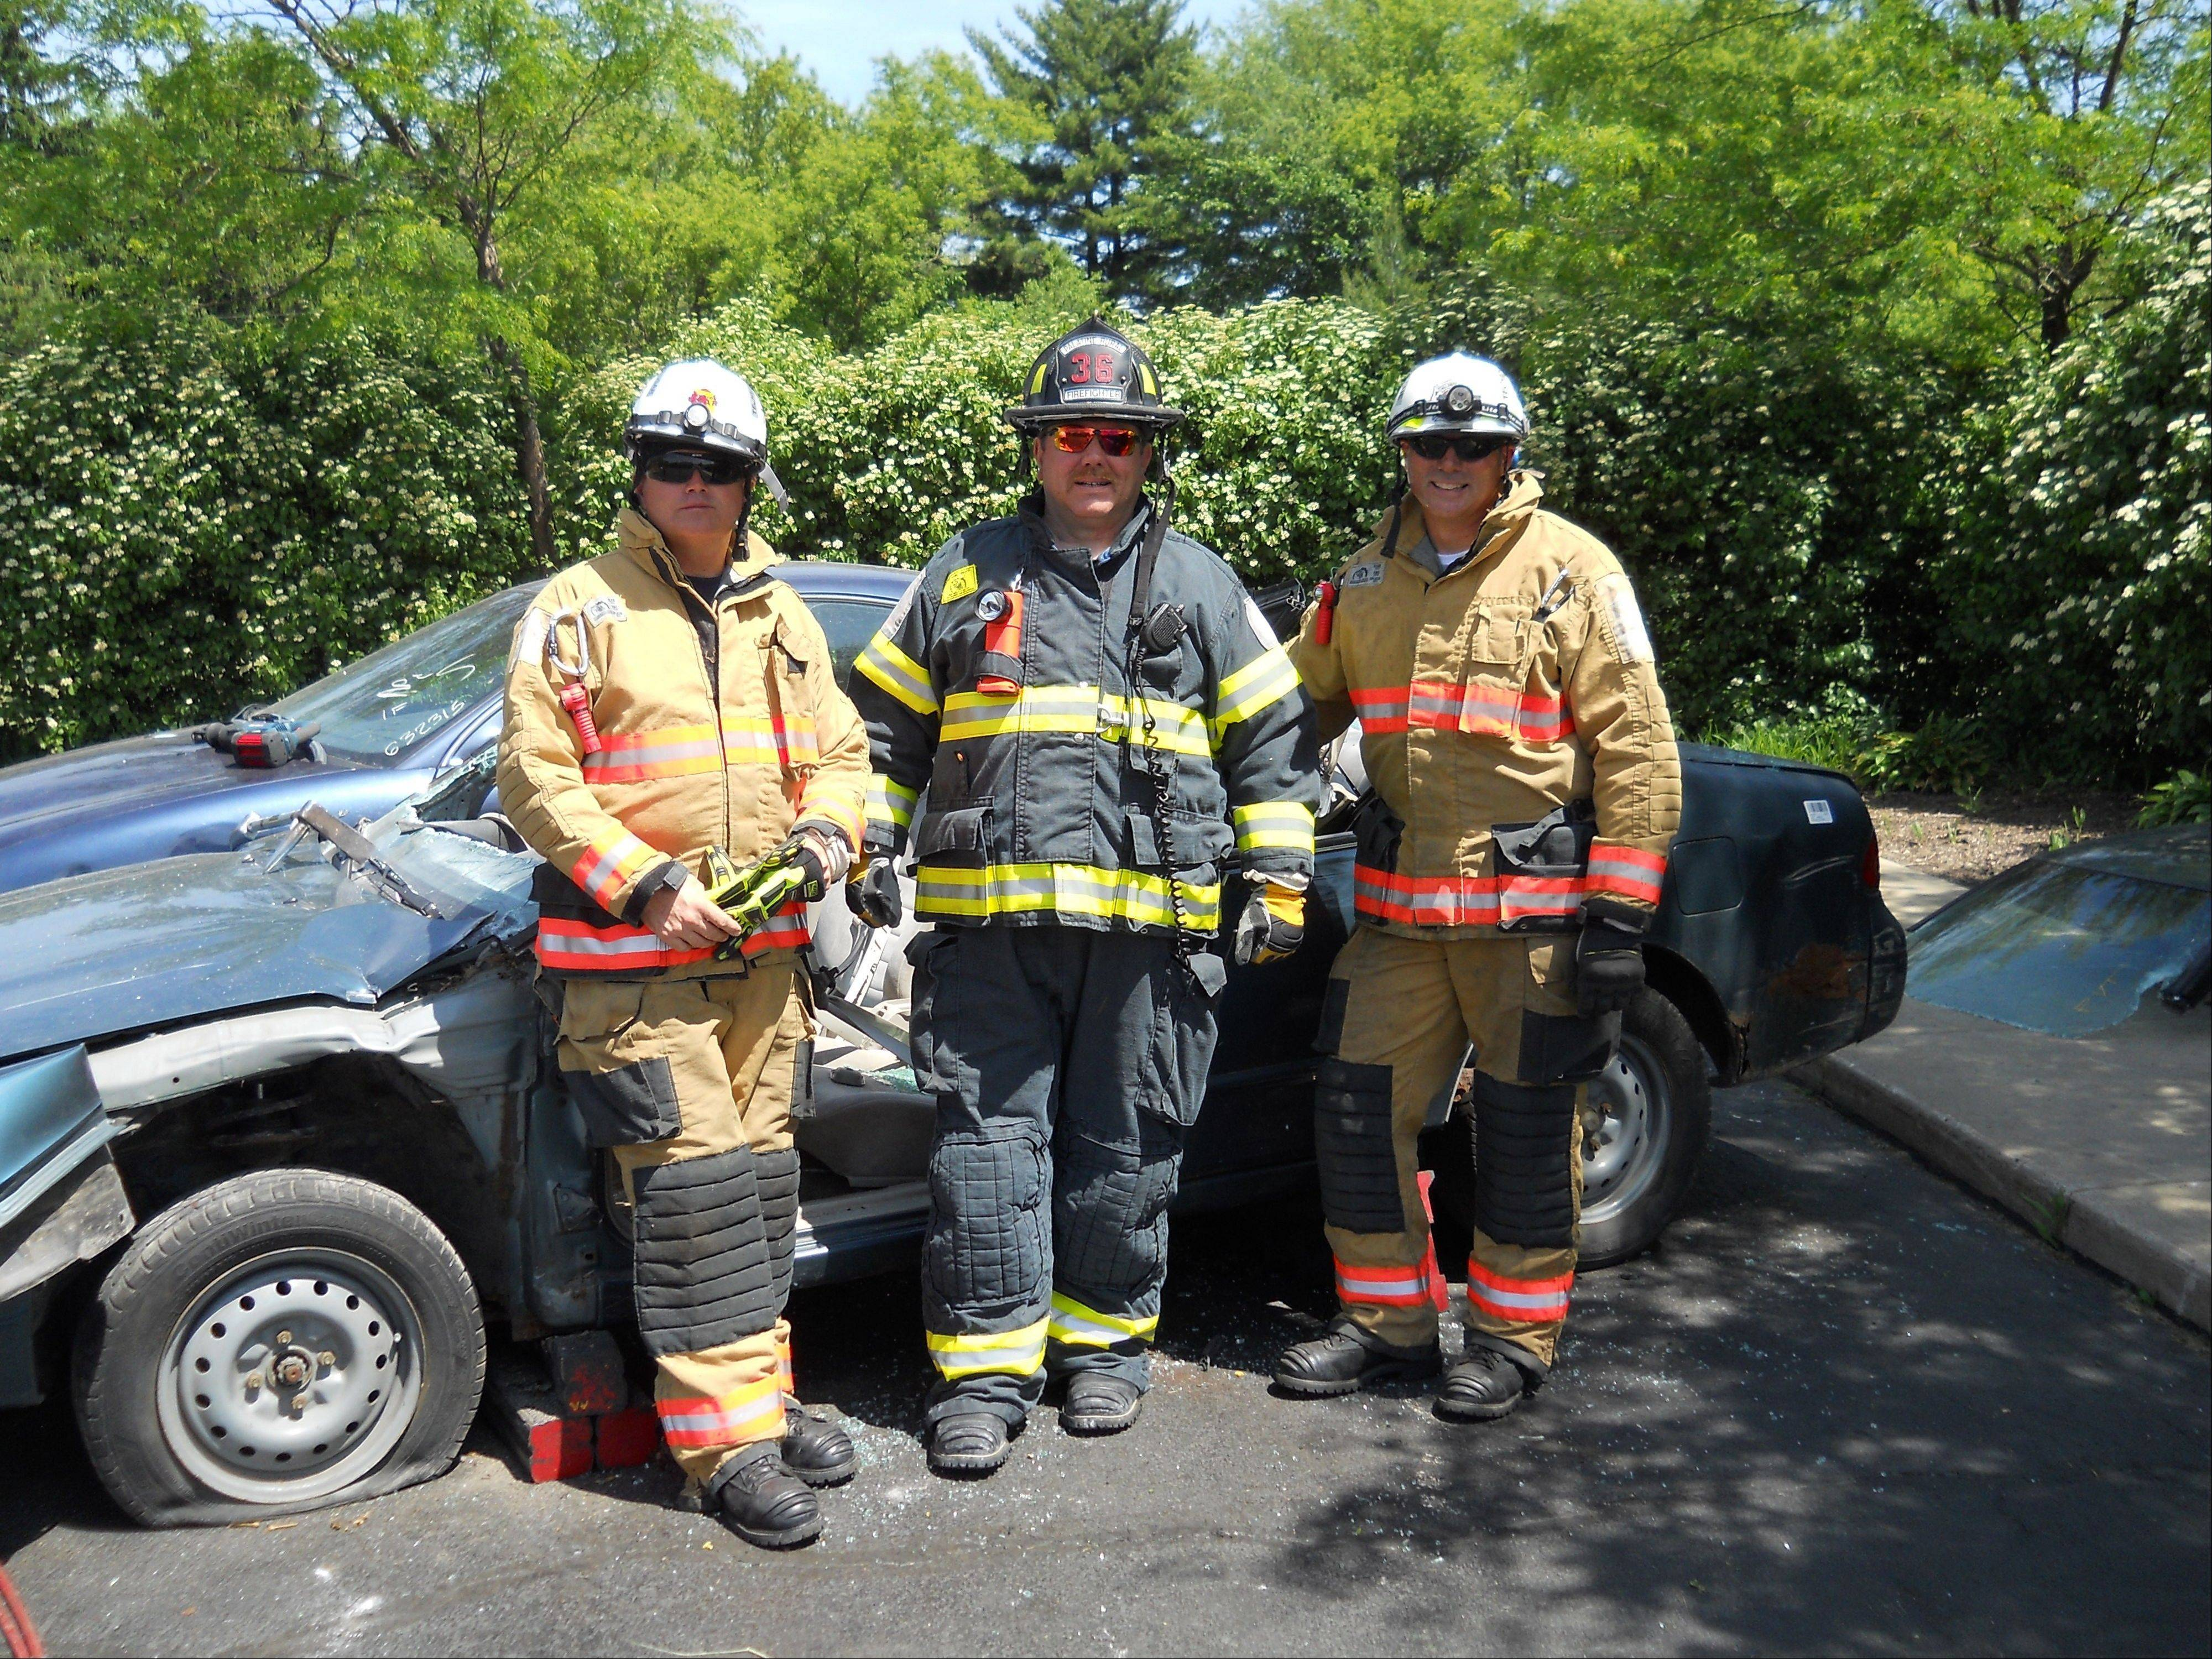 Pictured, from left, firefighters Aaron Gross and Wynn, along with Captain Clint Roberts during auto extrication training.